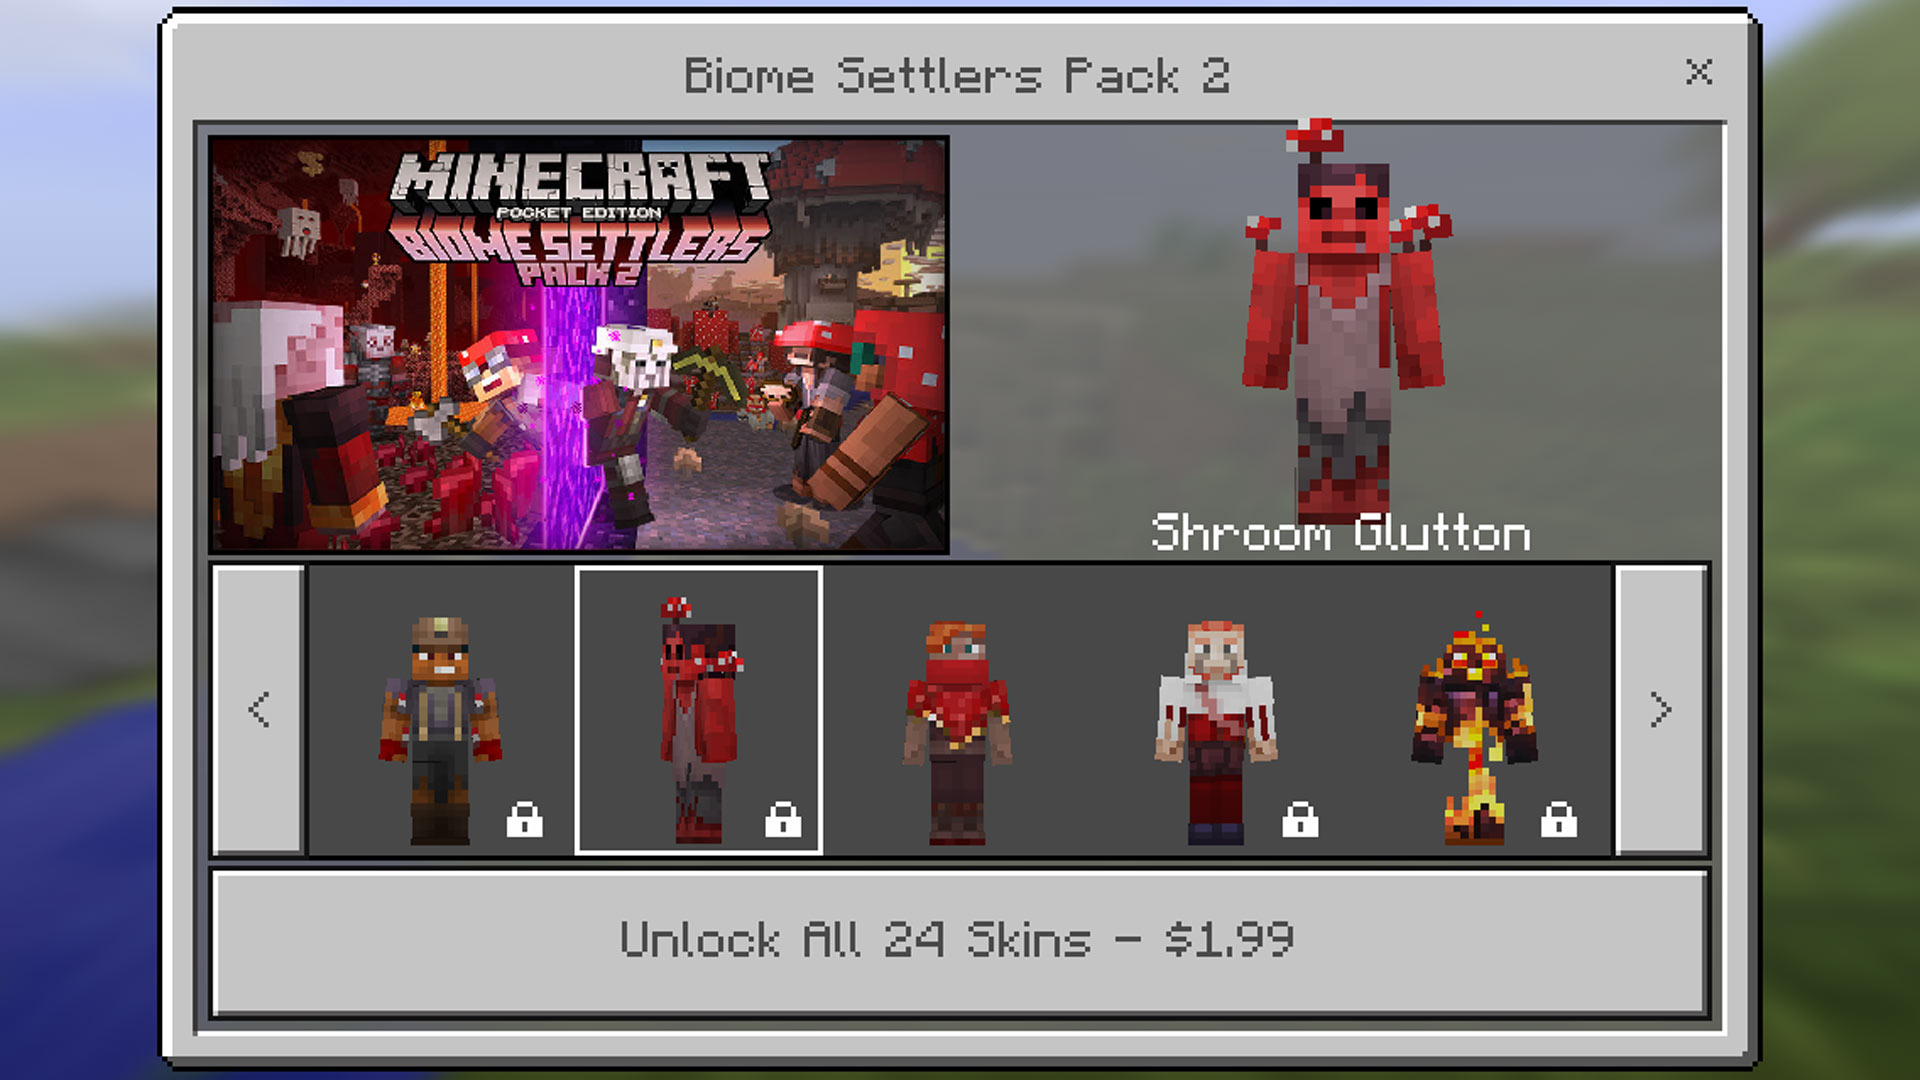 Minecraft Pocket Edition Biome Settlers Skin Pack 2 Gamerheadquarters Article